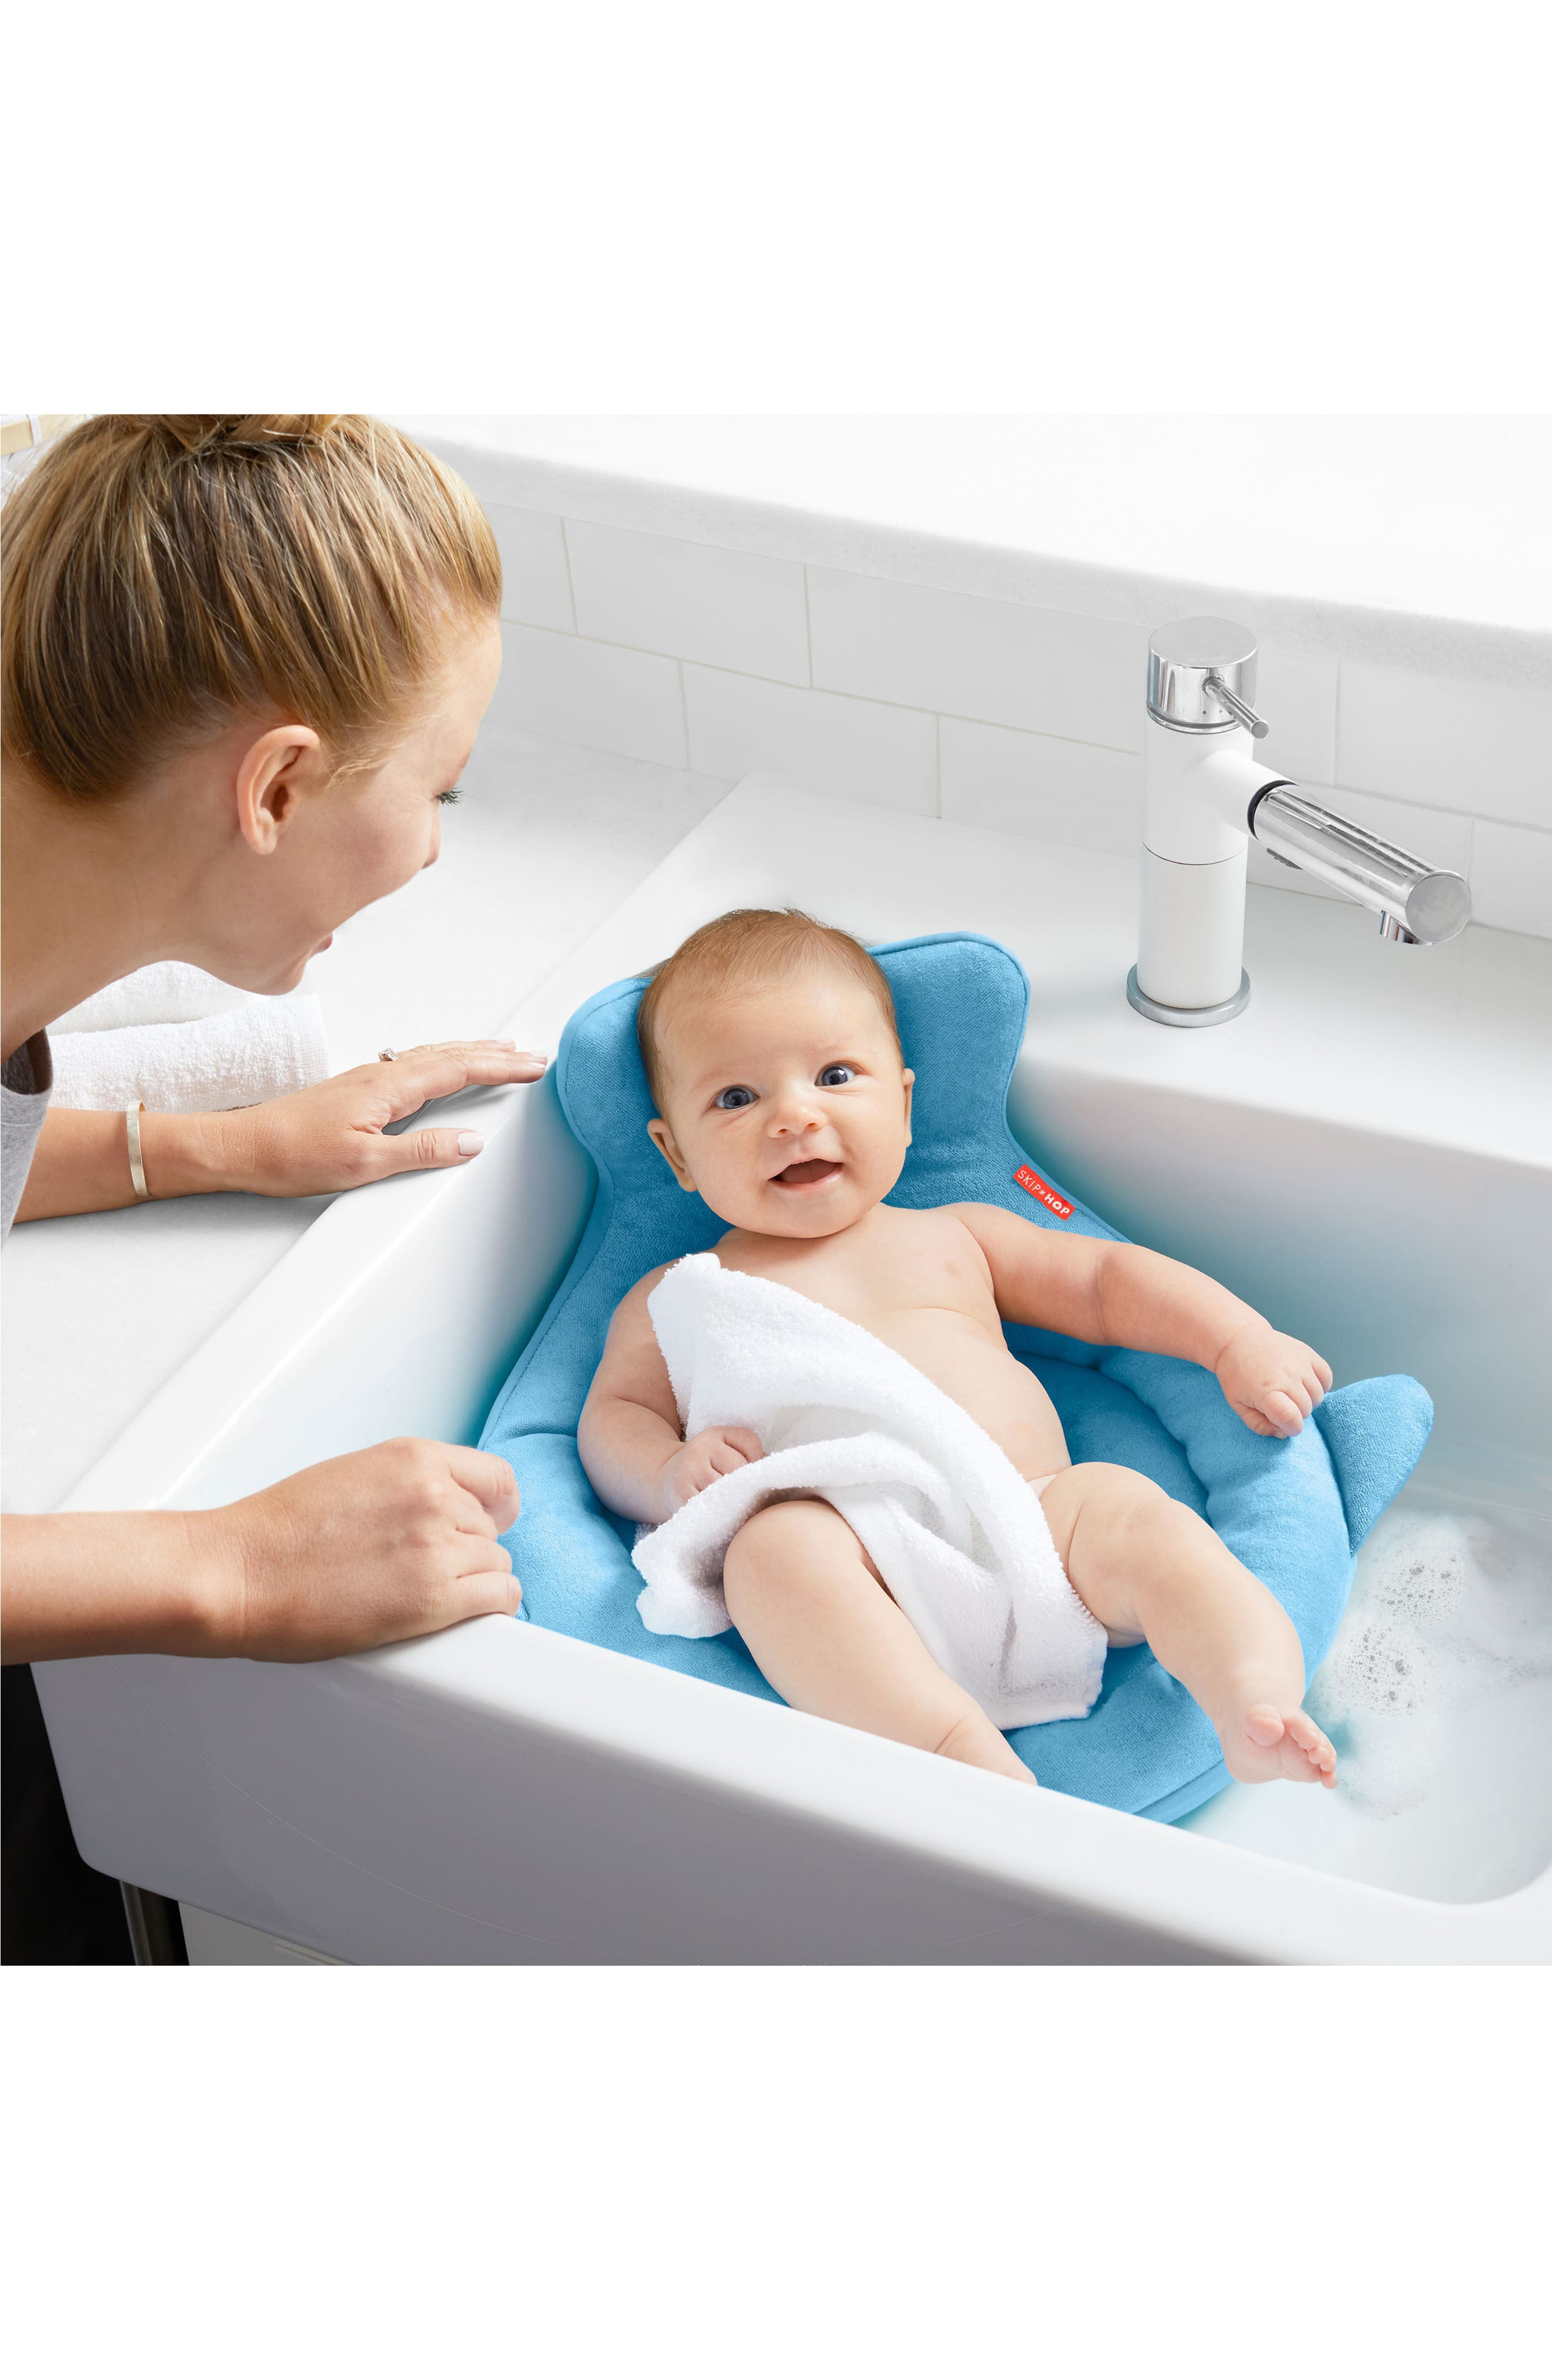 Moby Softspot Sink Bather Inset,                             Alternate thumbnail 6, color,                             MOBY